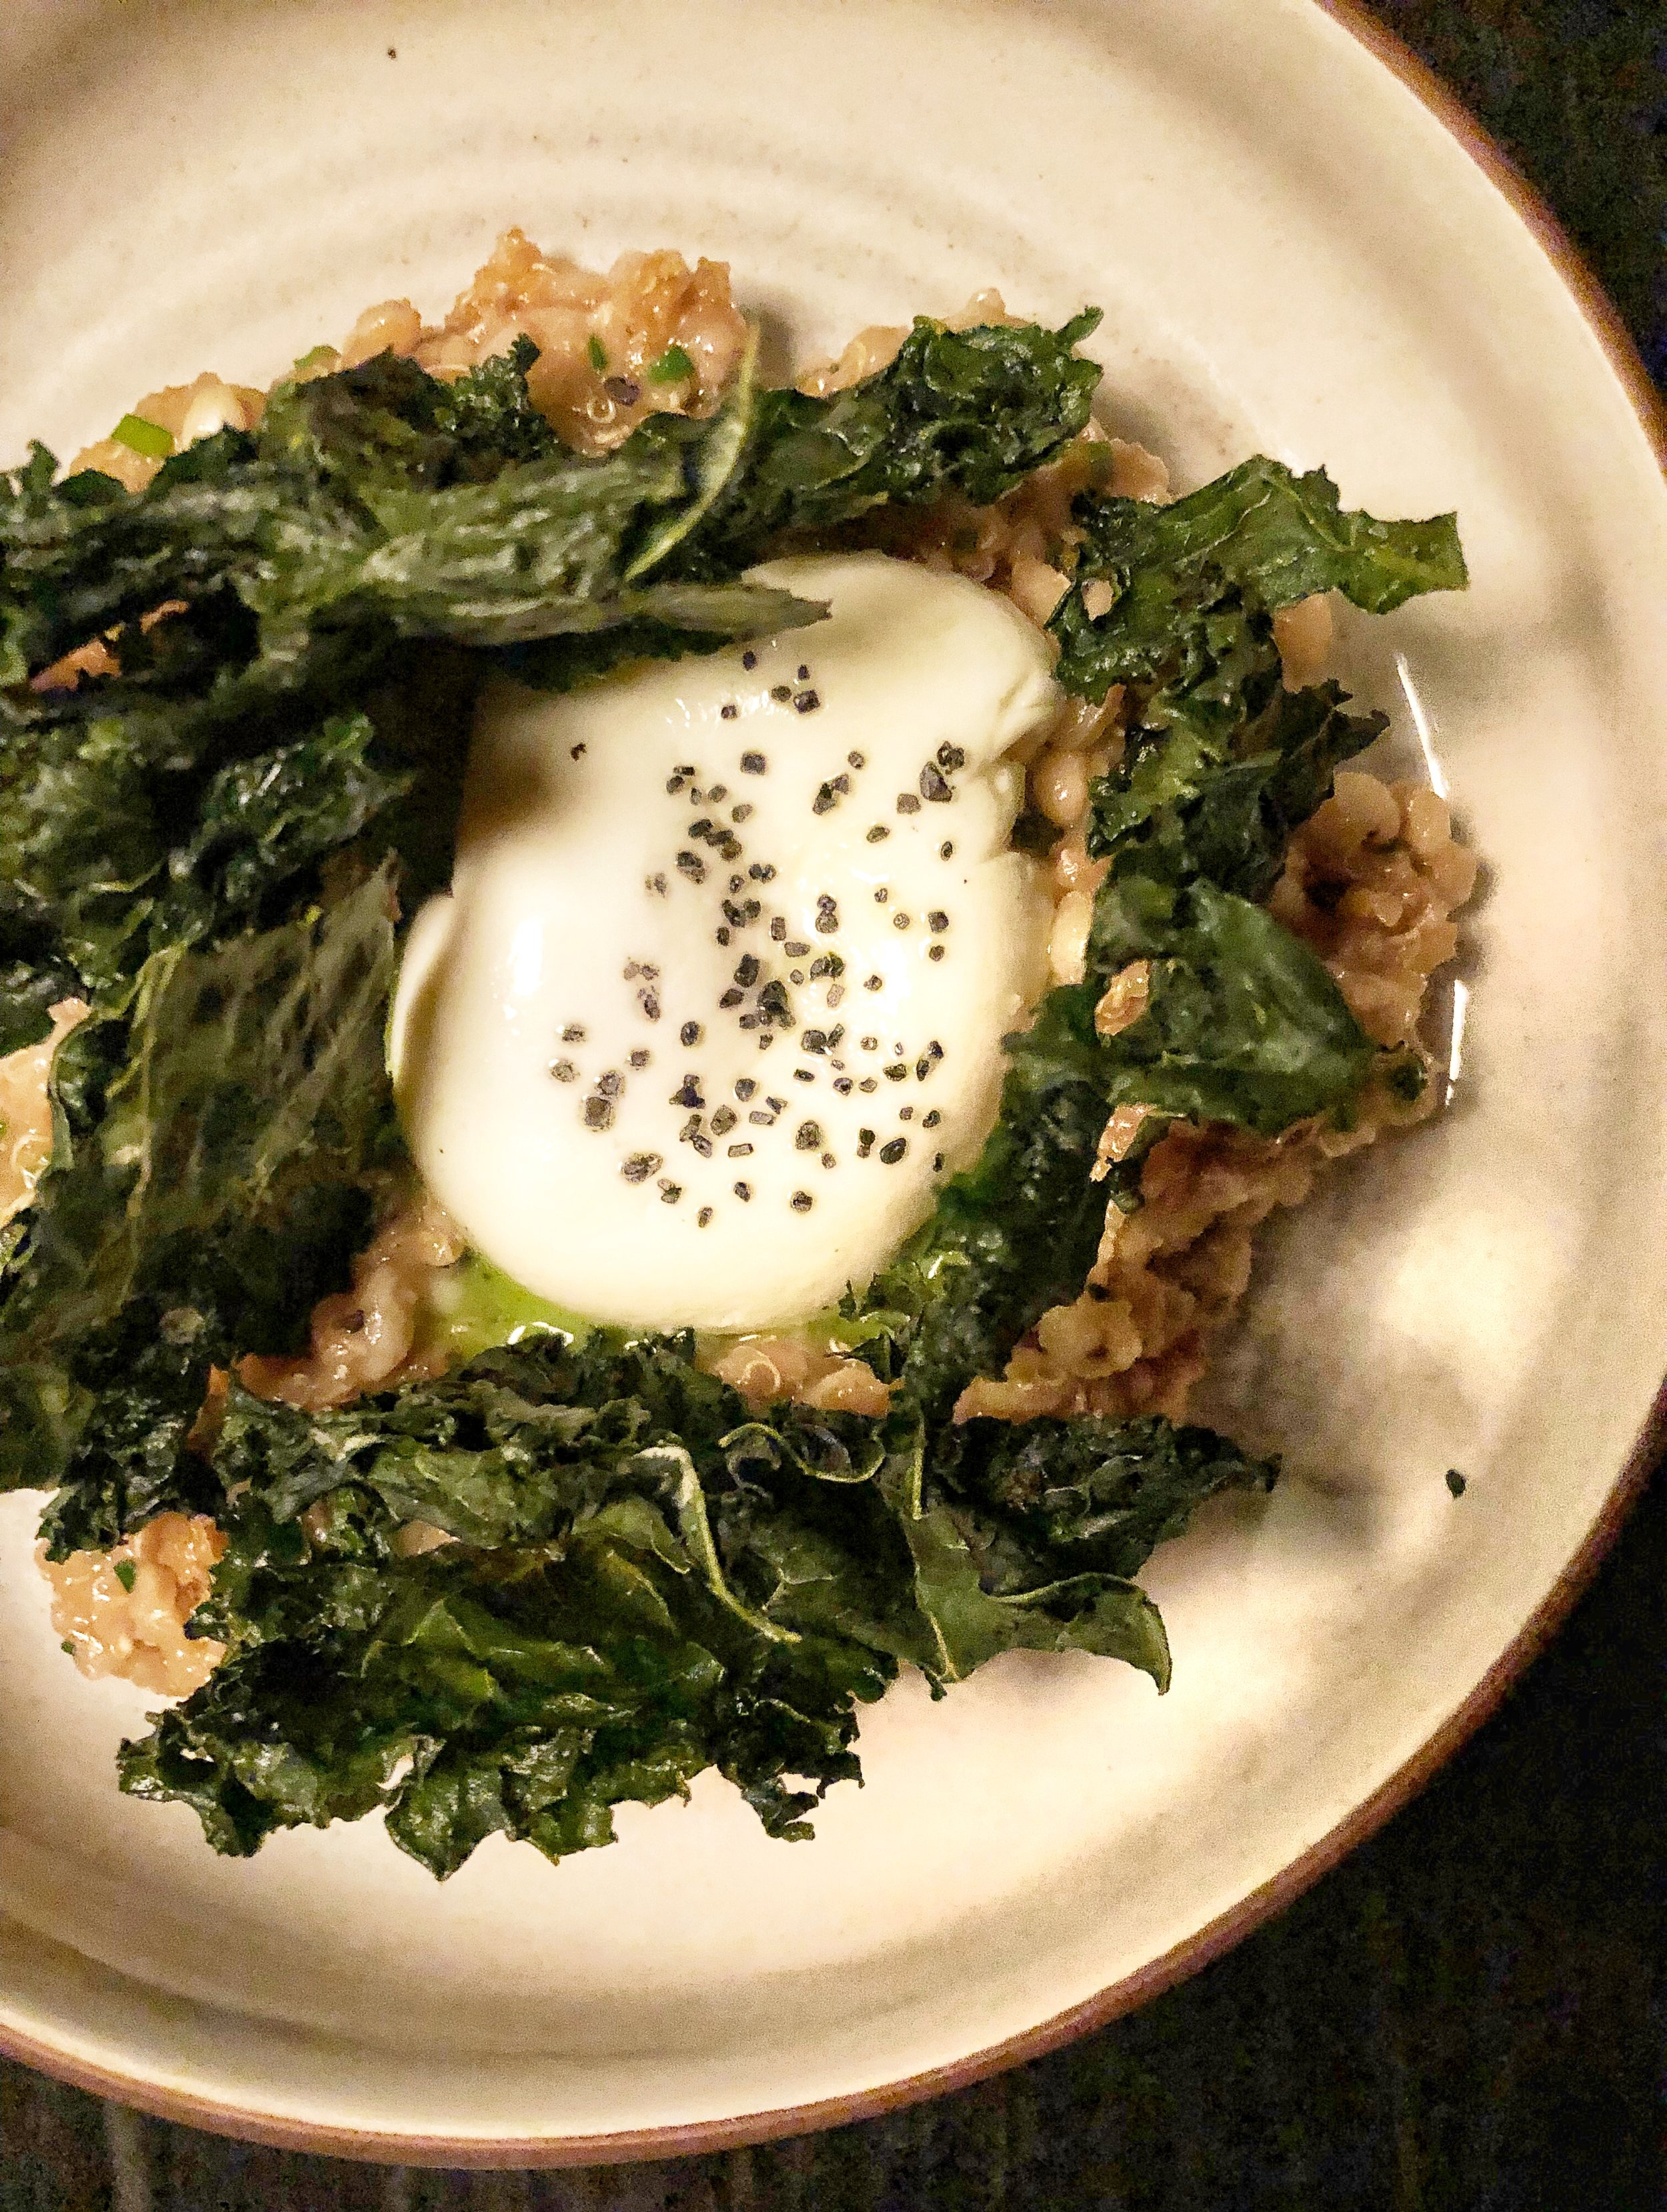 egg and grains - poached egg, kale, escabechePer Whiteside, this is the most underrated dish on the menu, and I'm sure most people don't order it because it doesn't contain a meat and doesn't sound sexy. Well let me tell you people, this dish is as sexy as it gets. Mix the grains in with the poached egg and take a wild euphoric ride on a rainbow of flavor.